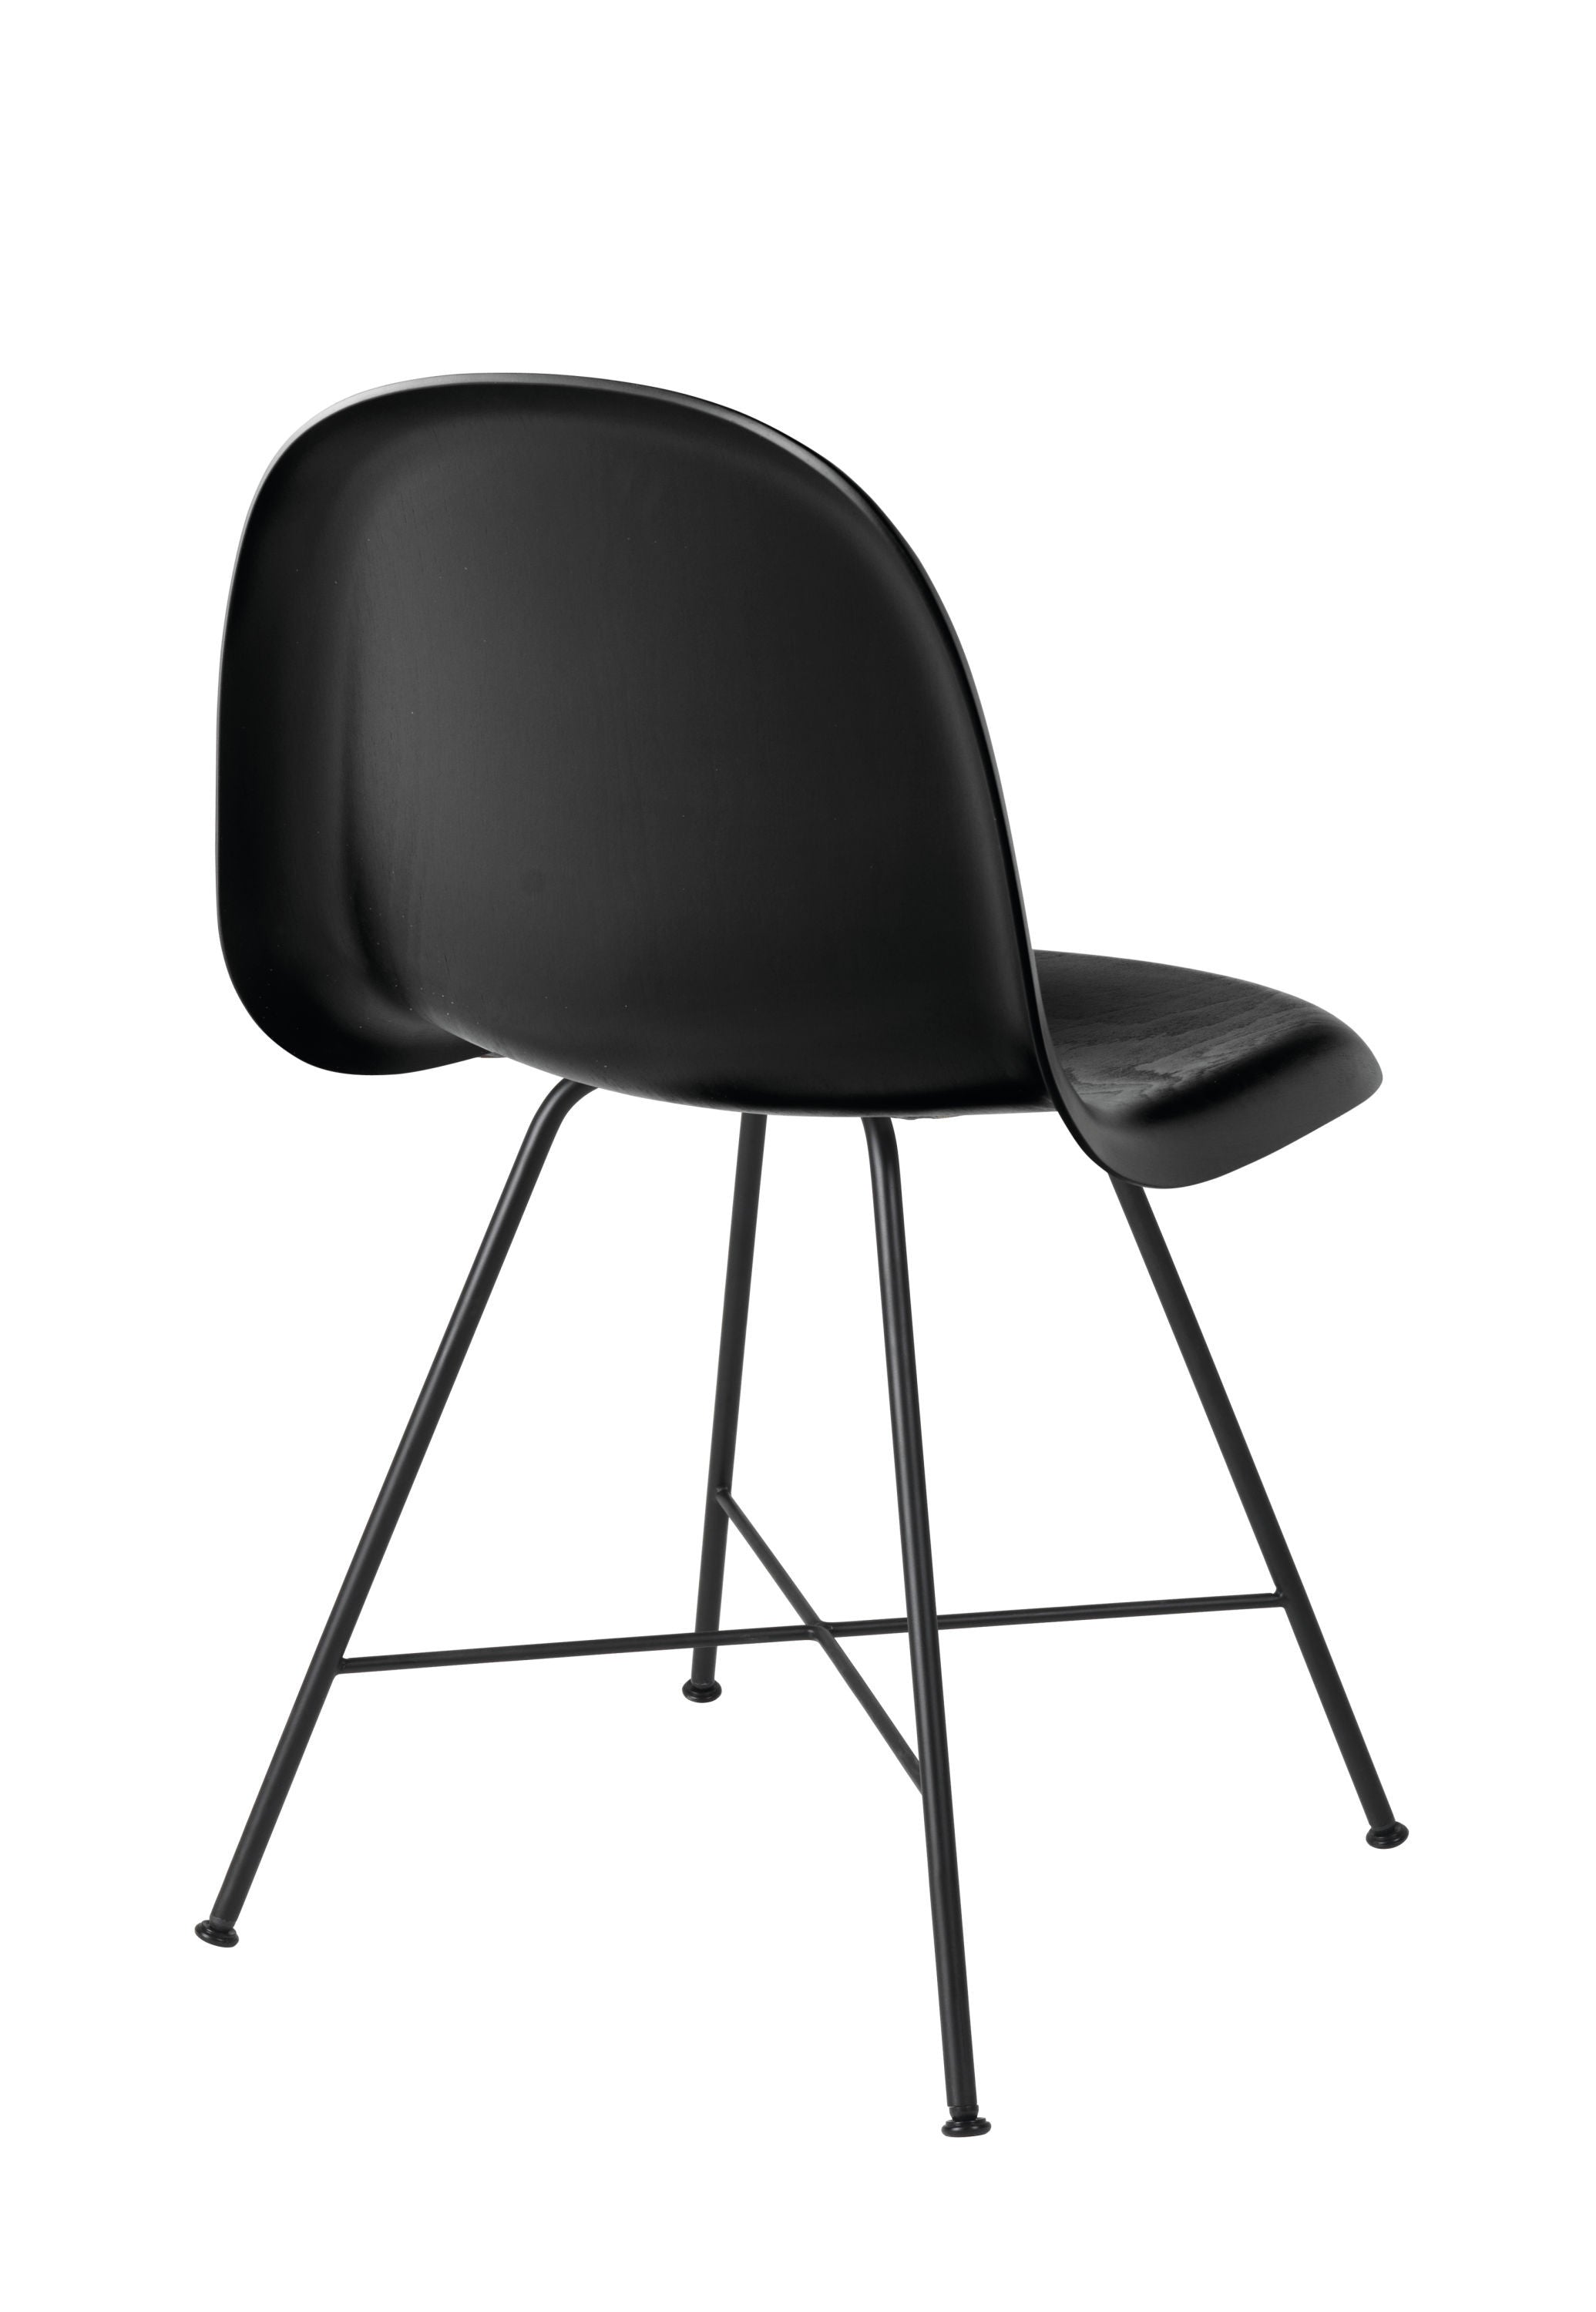 3D Dining Chair - Un-upholstered Center Black base, Black Stained Birch shell fra GUBI